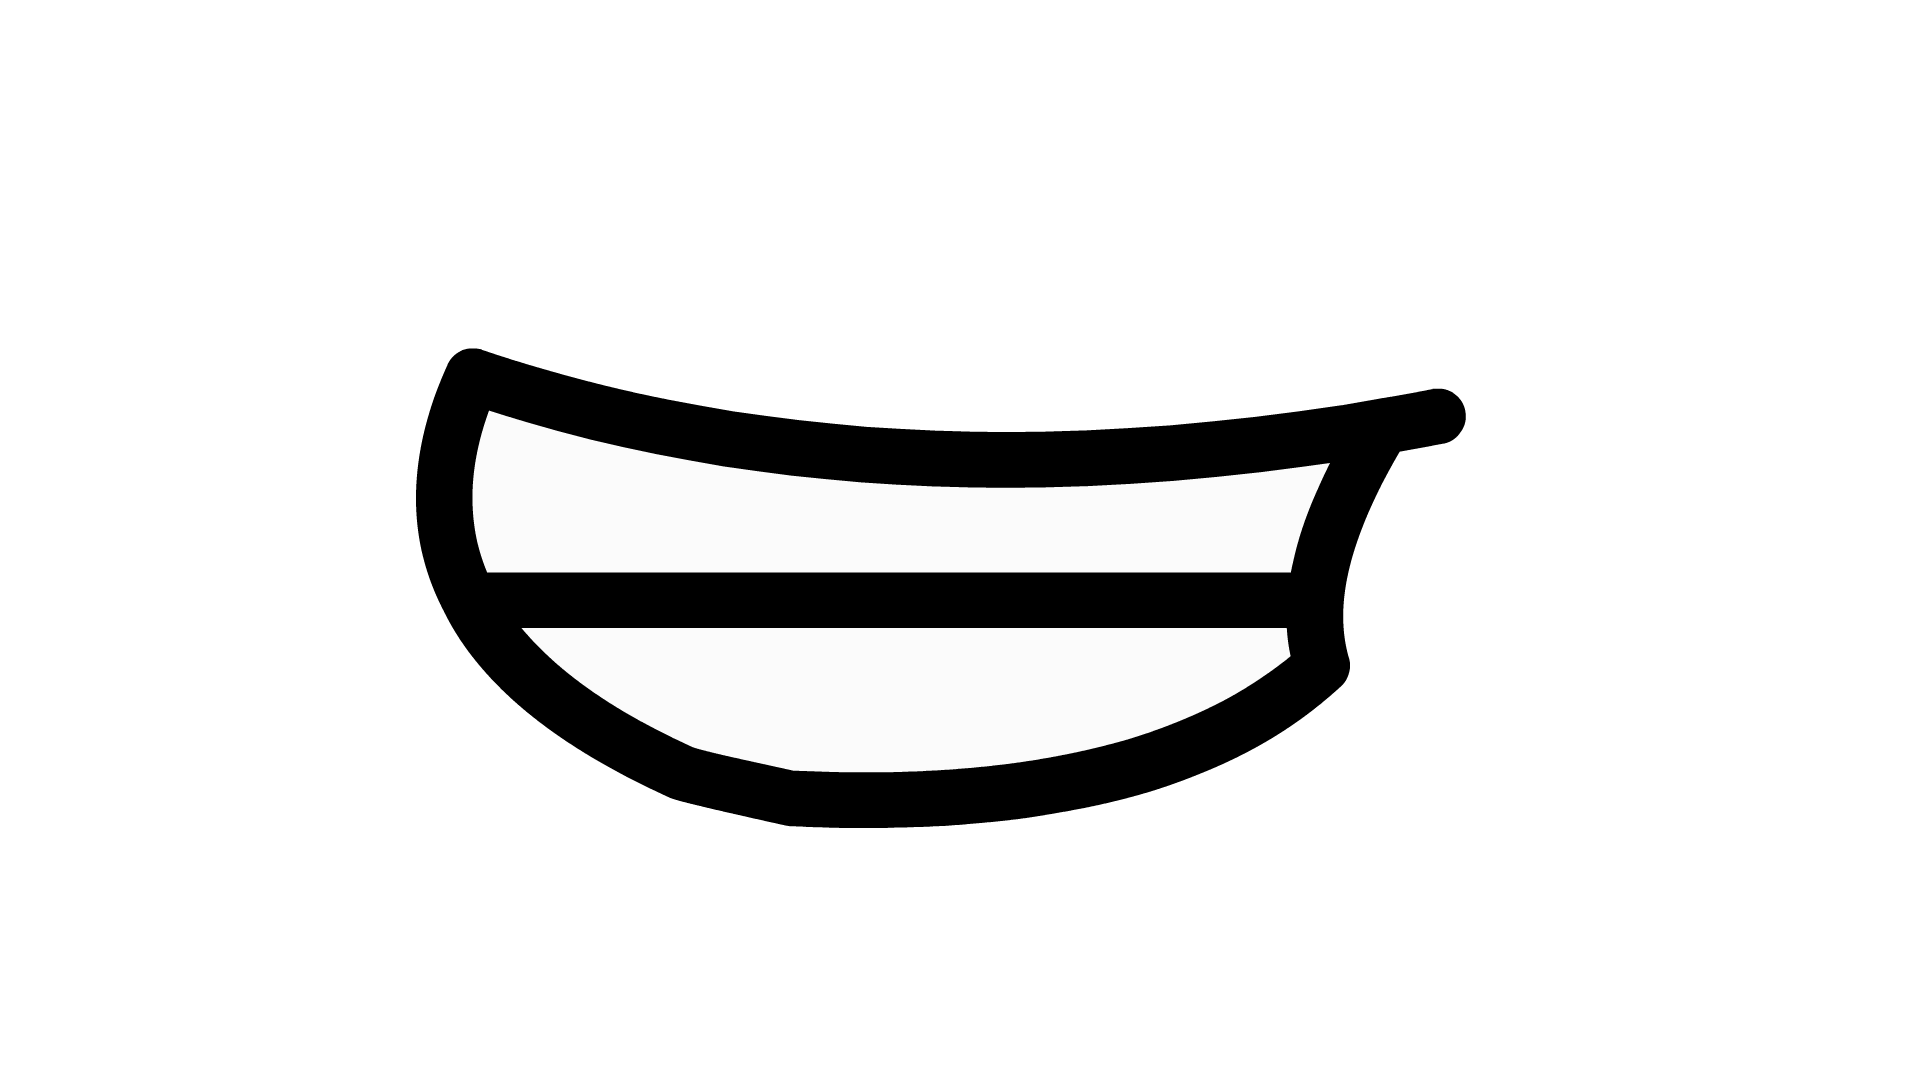 Smile teeth png. Image object shows community